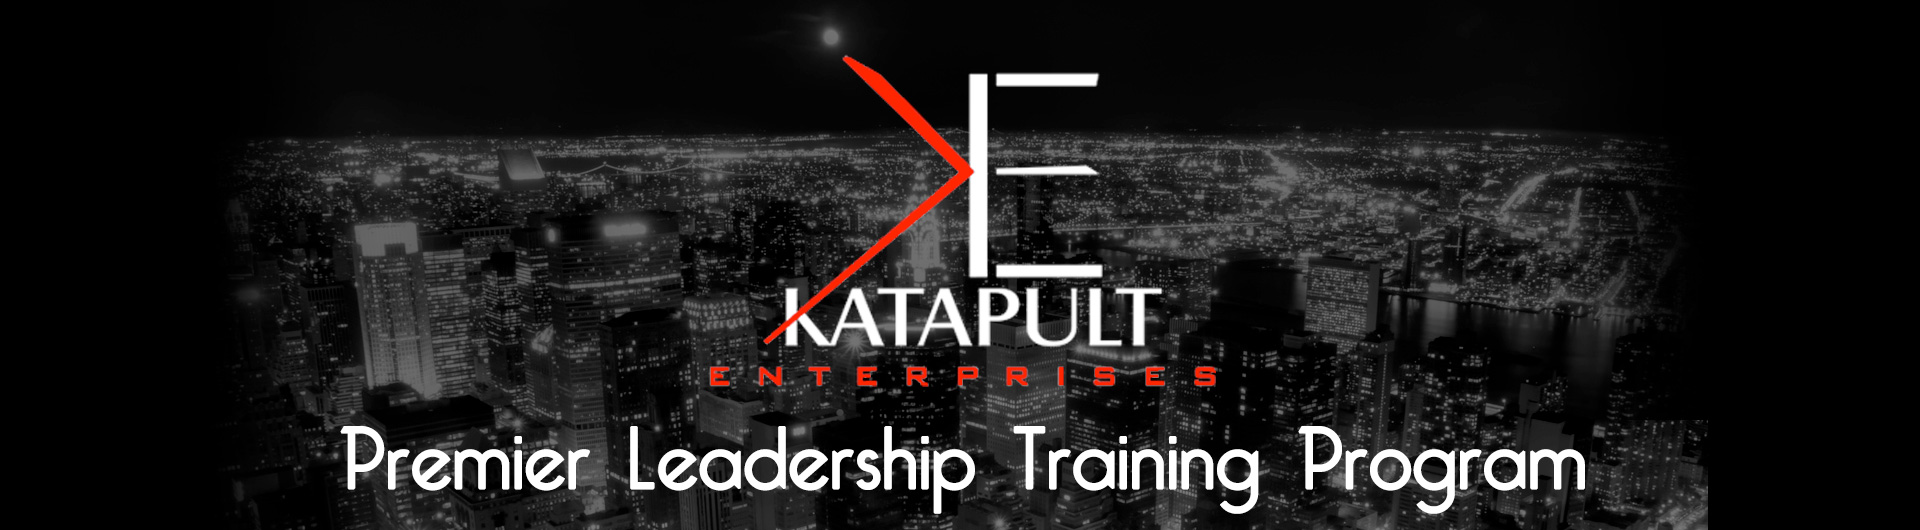 Premier Leadership Training Program